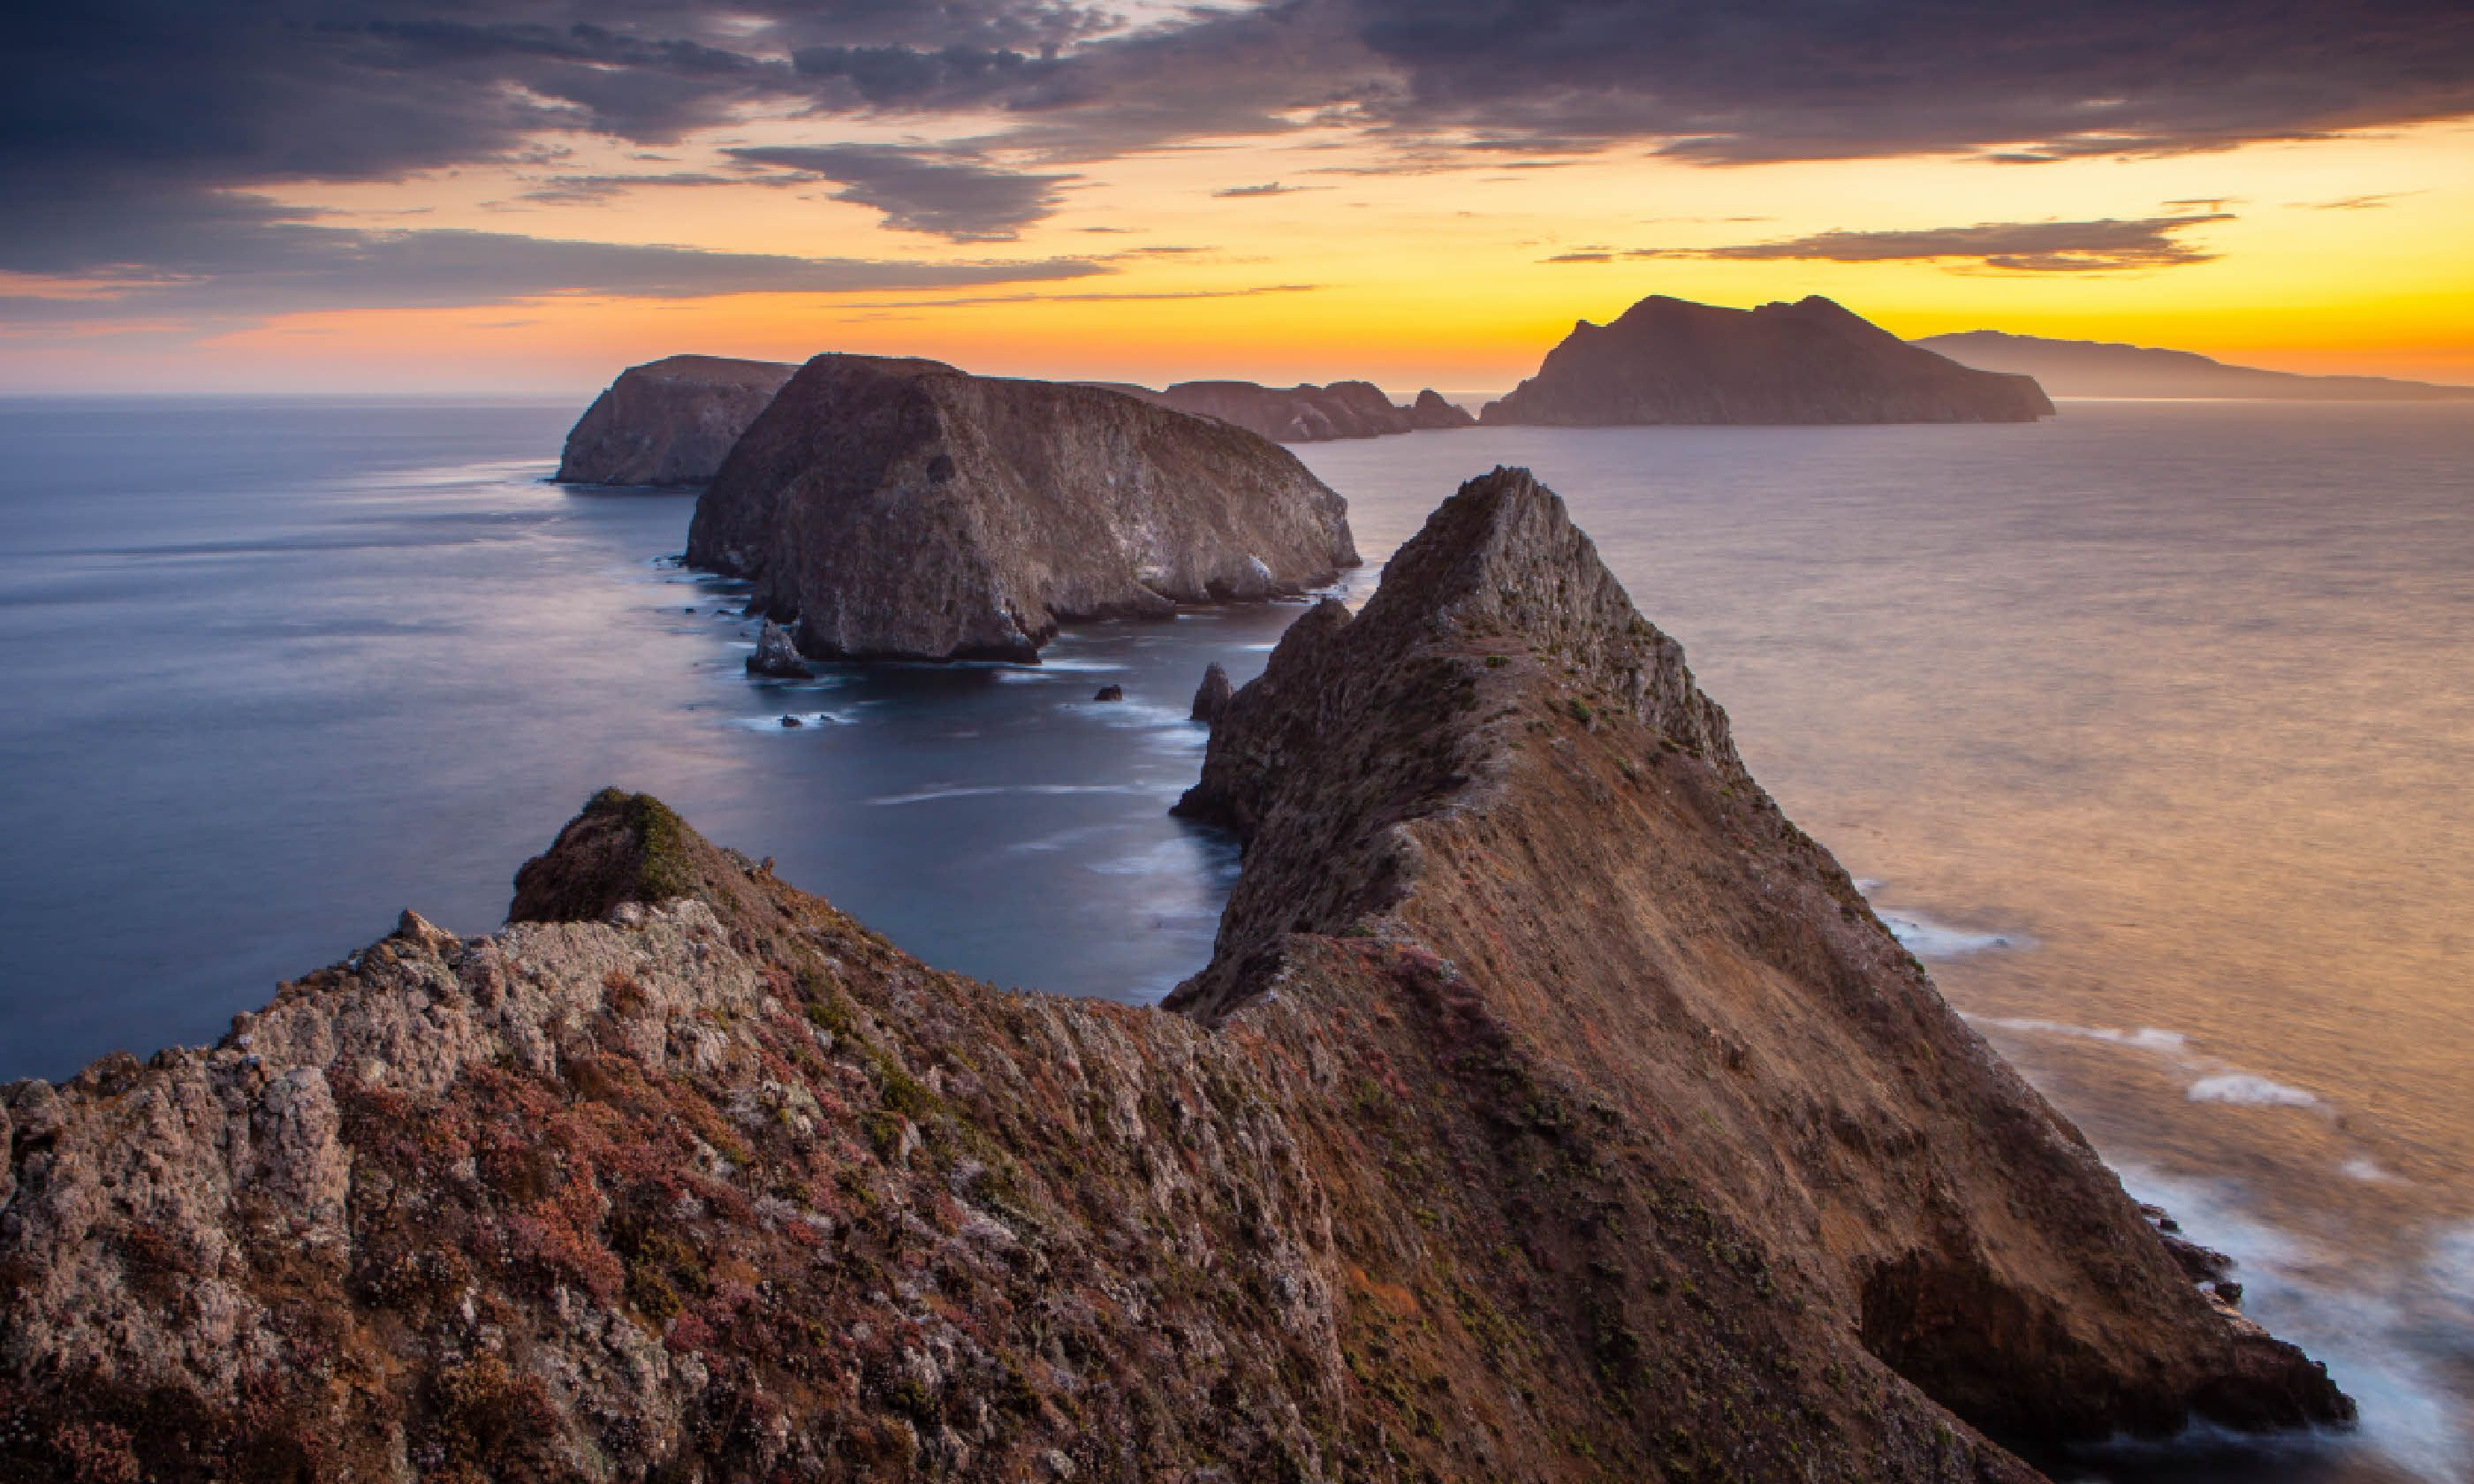 Inspiration Point on Anacapa Island, Channel Islands (Flickr Creative Commons:Brian Hawkins)